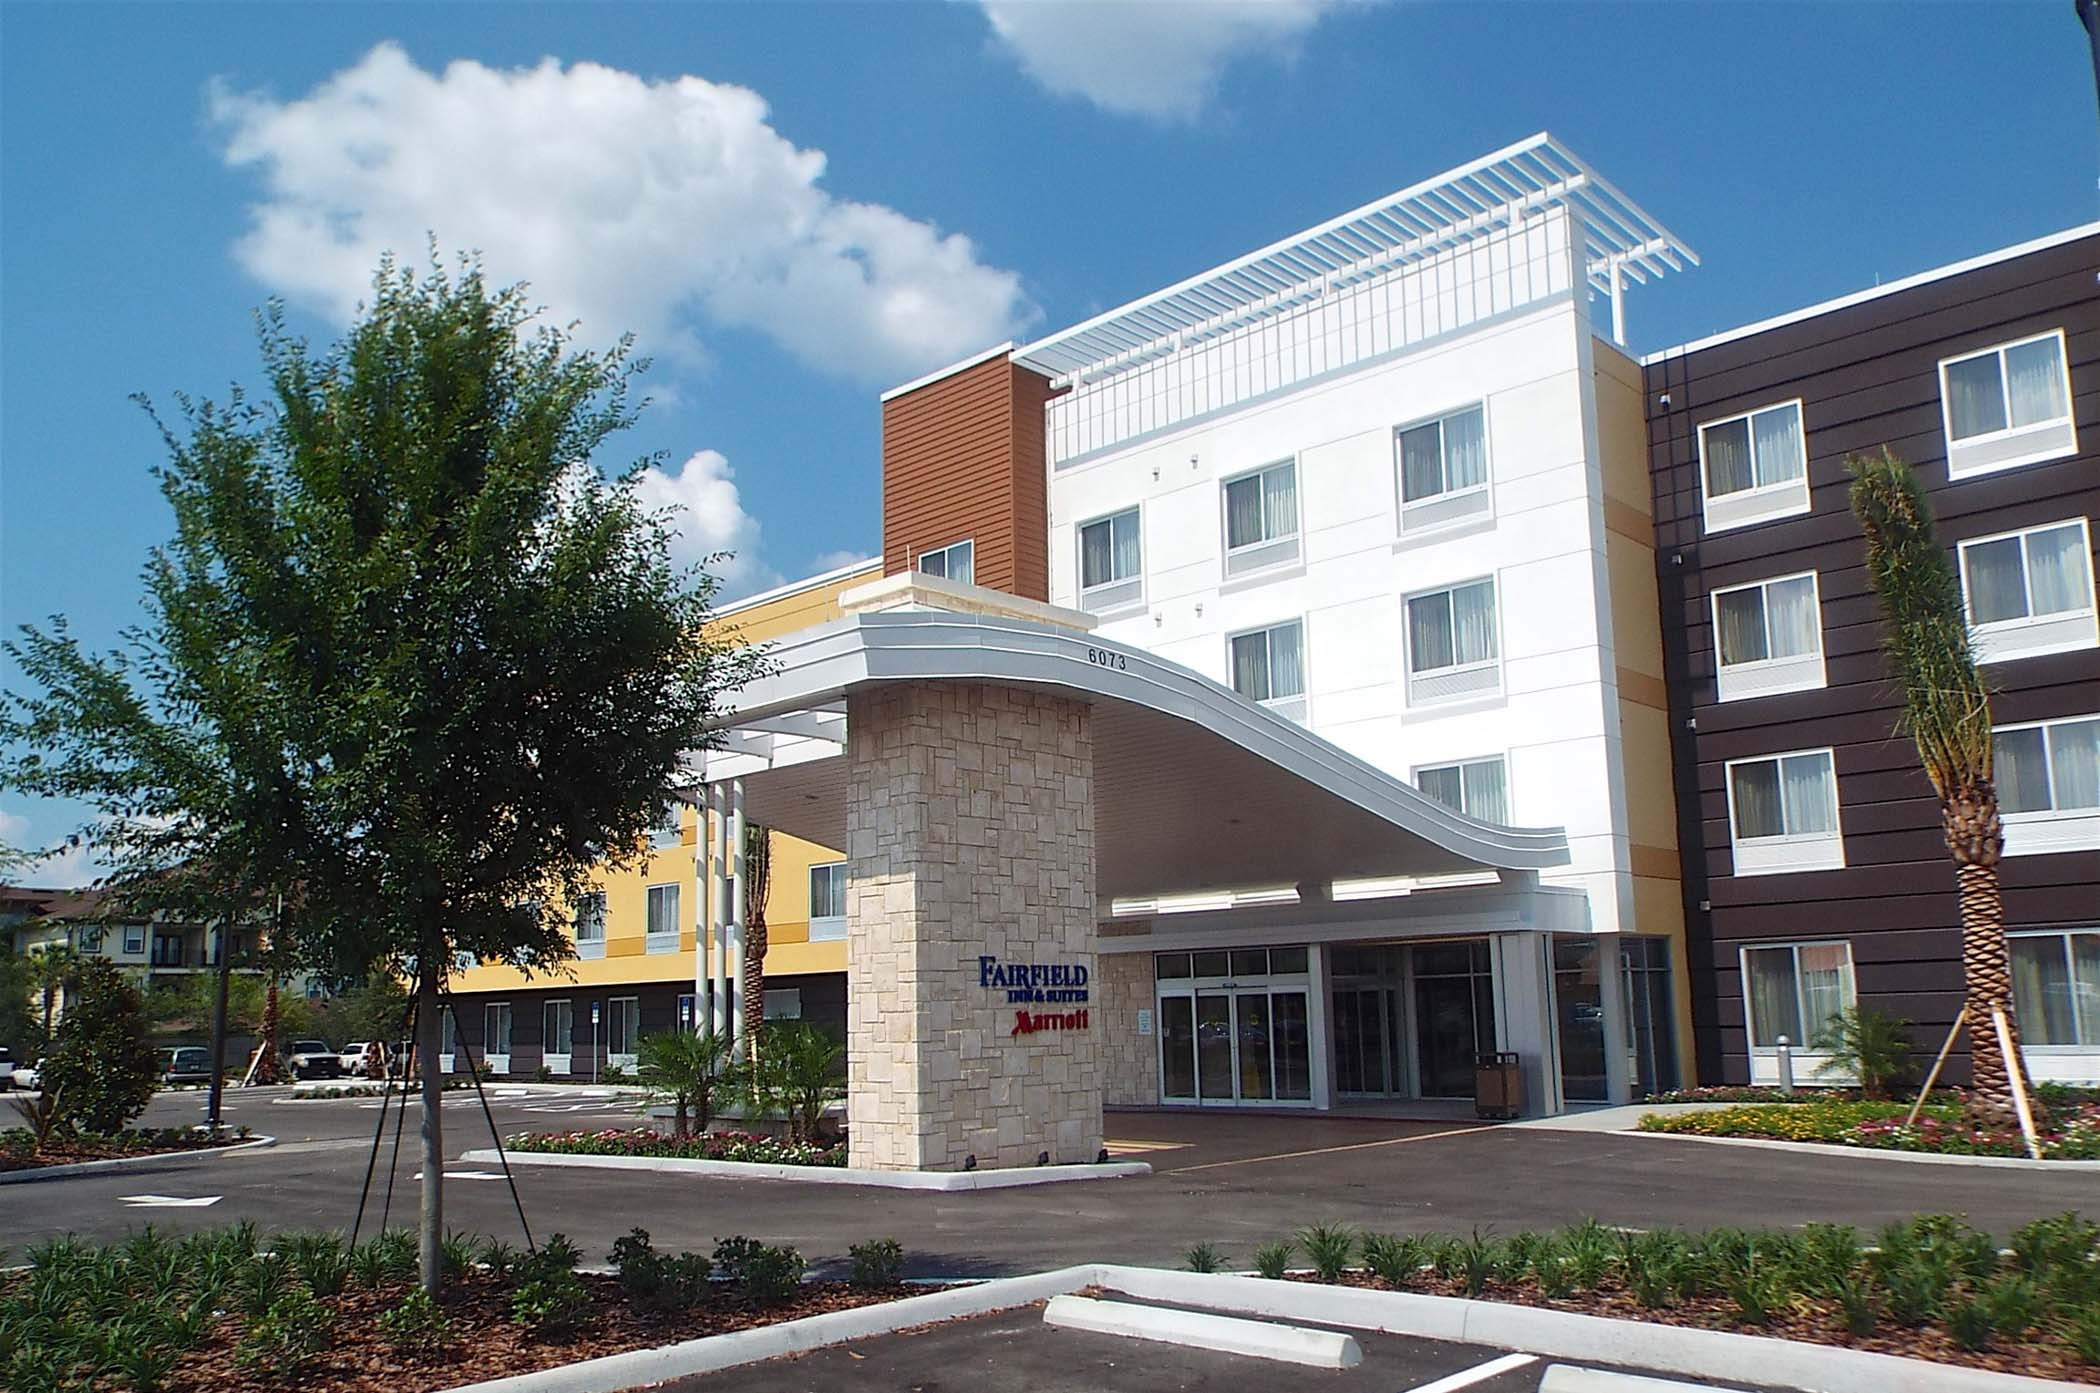 Fairfield Inn & Suites Orlando Kissimmee/Celebration, Florida